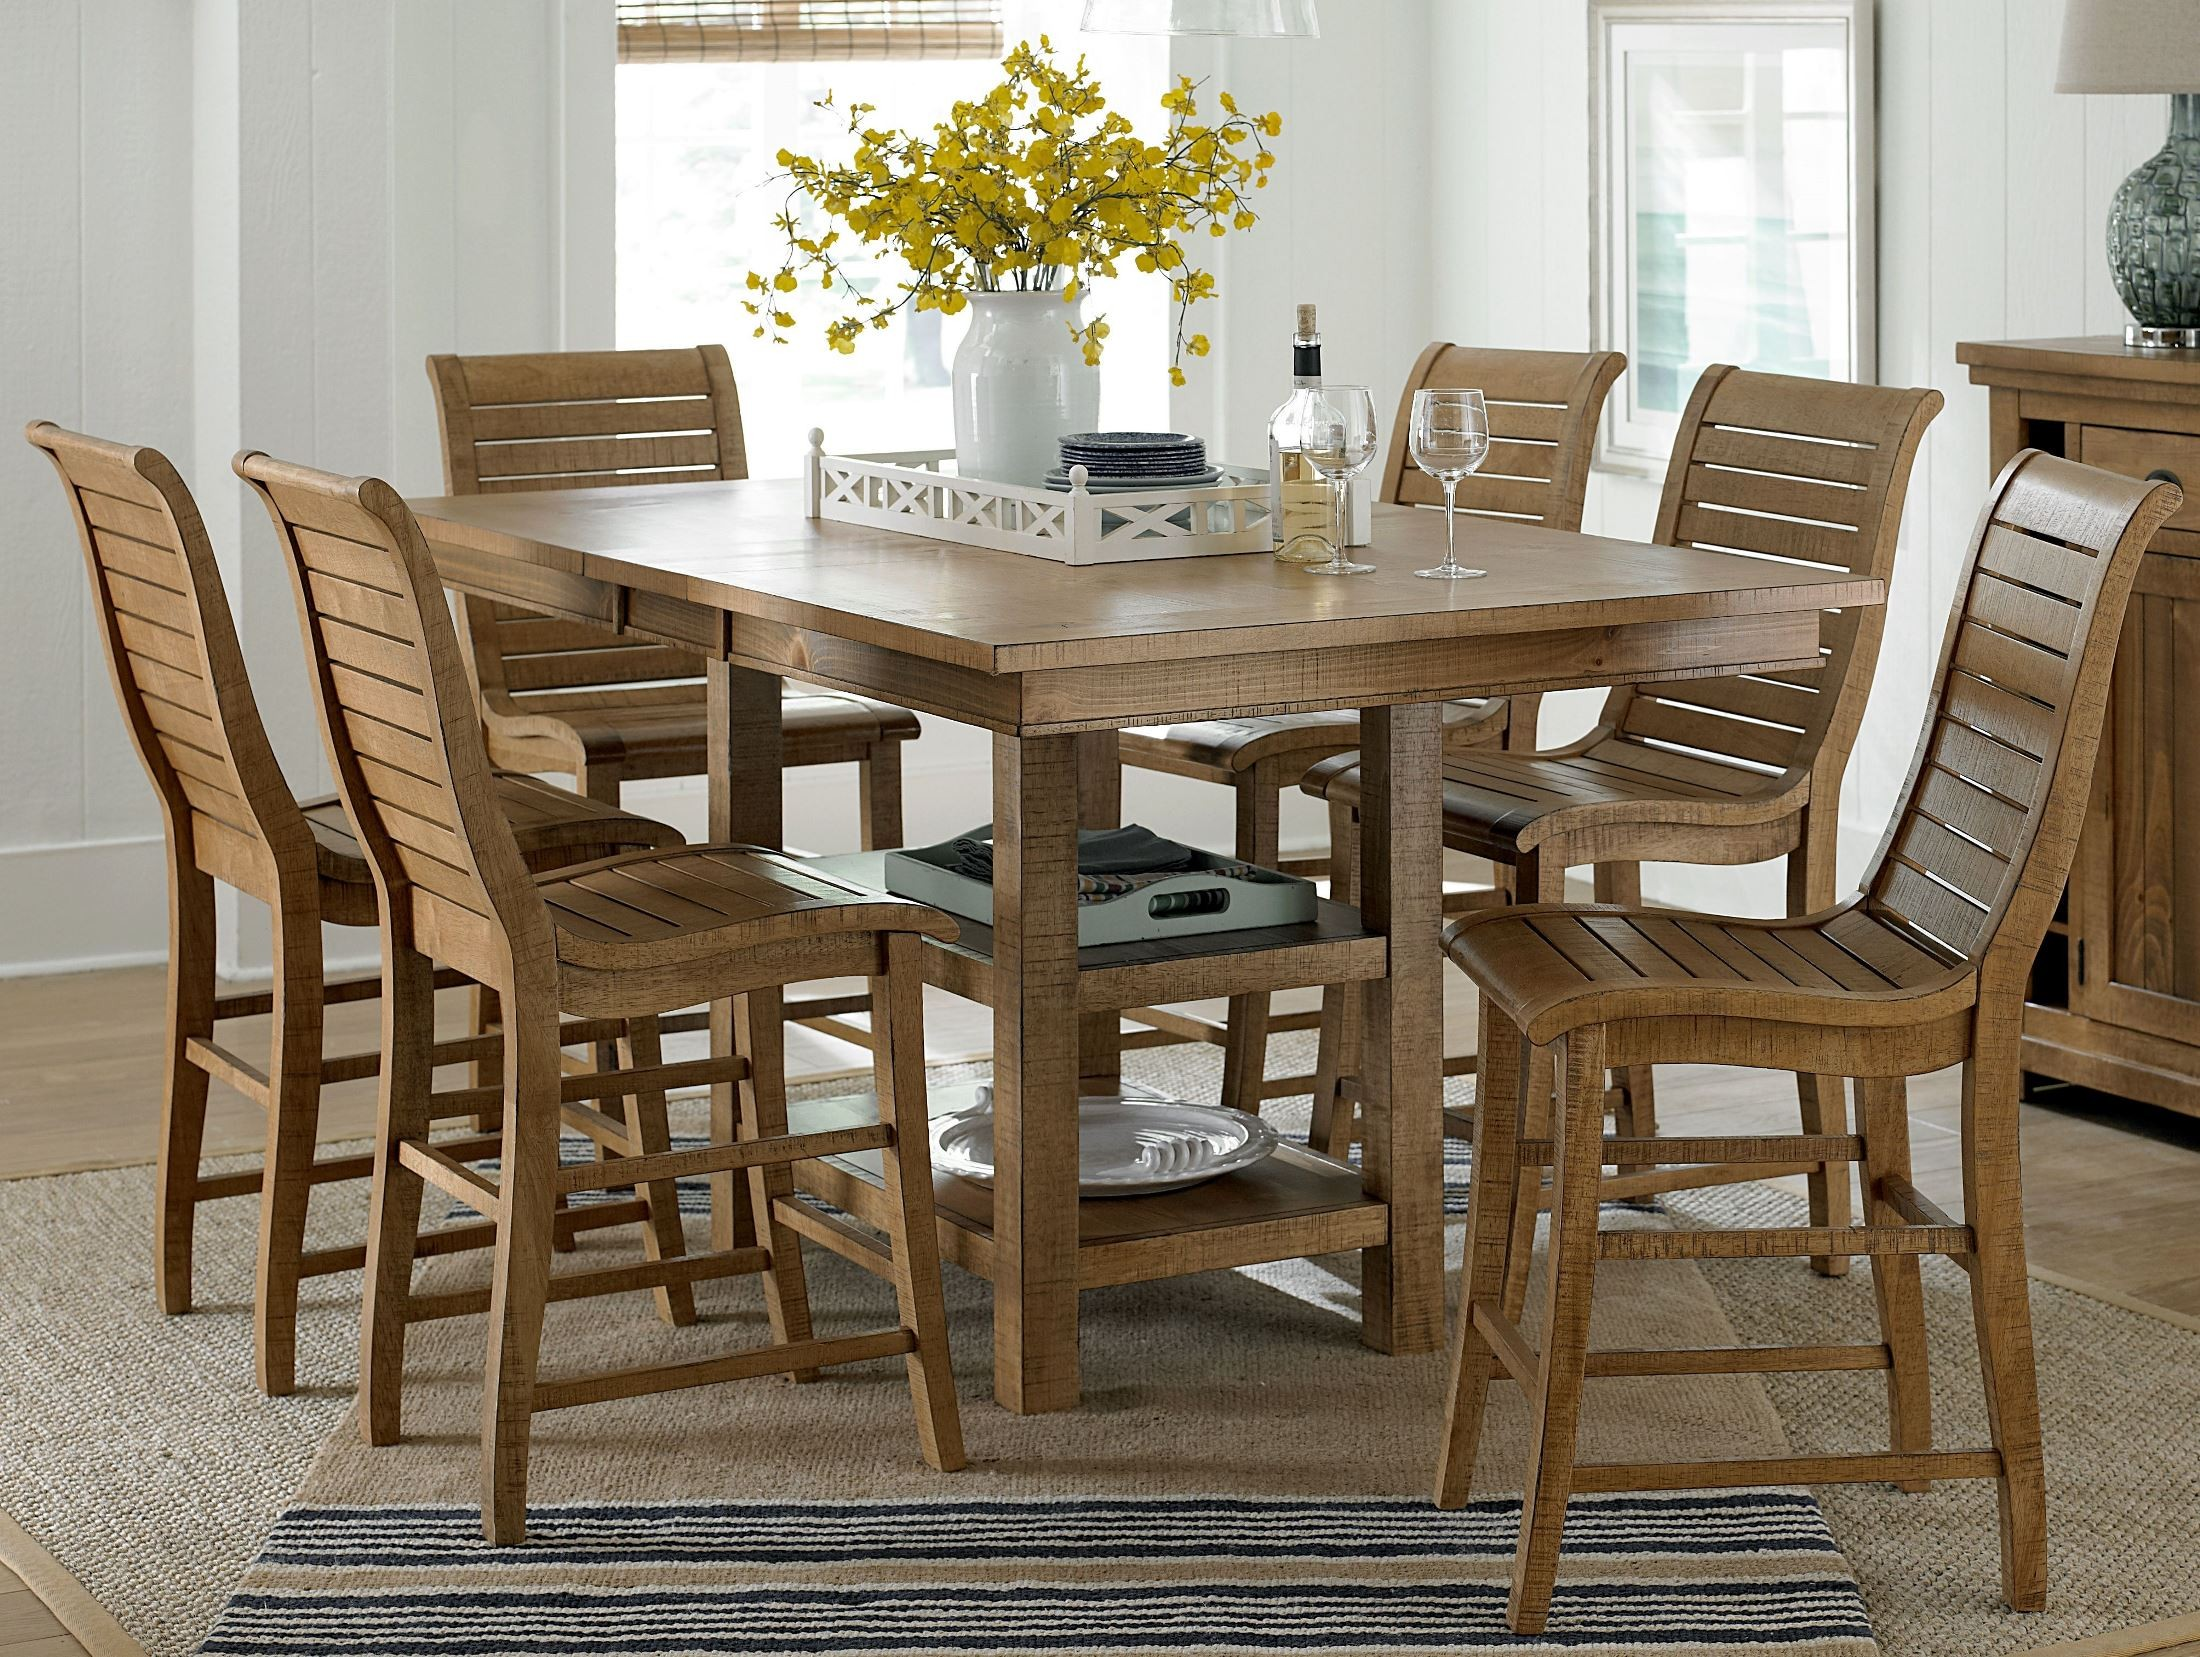 Willow Distressed Pine Rectangular Extendable Counter Dining Room Set P808 1